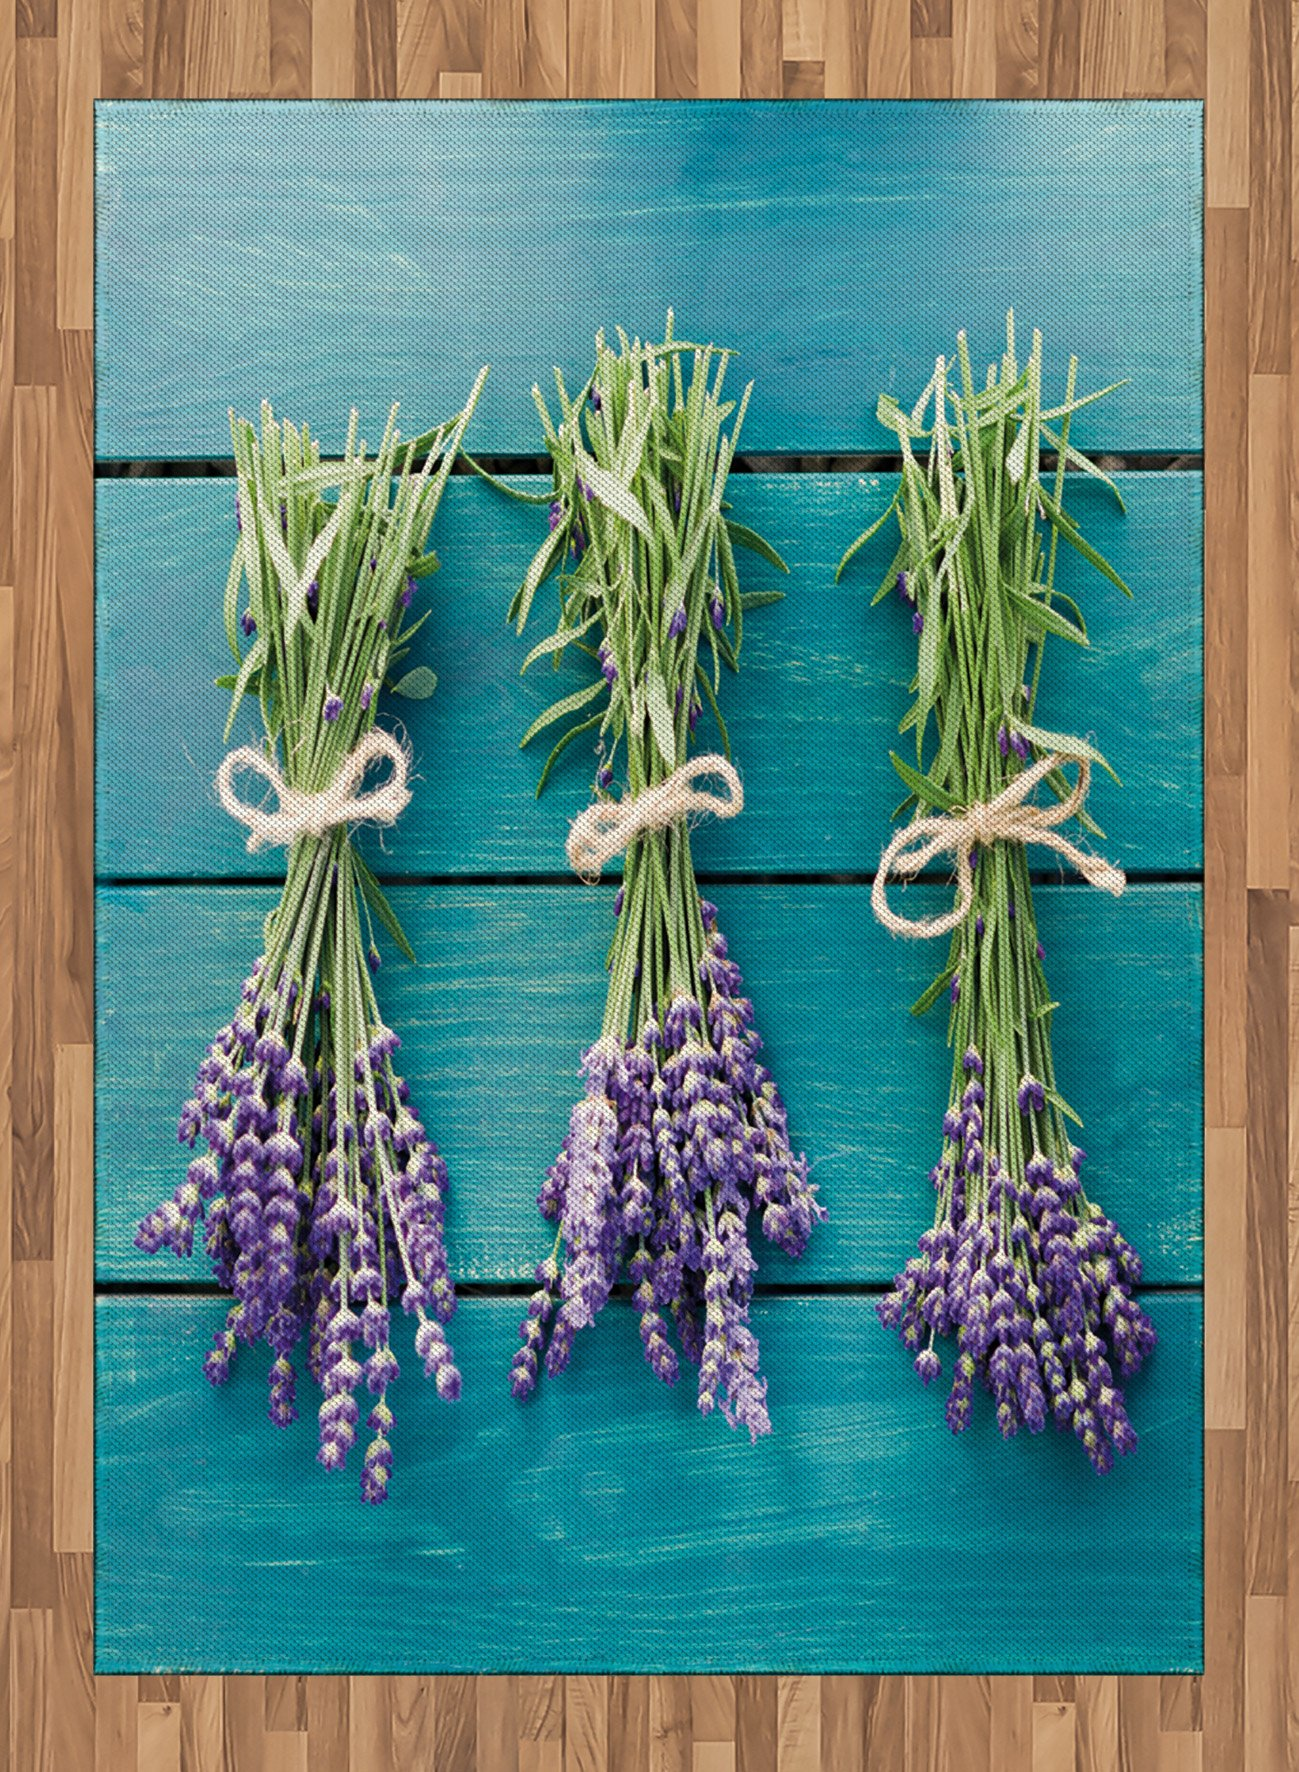 Lavender Area Rug by Lunarable, Fresh Lavender Bouquets on Blue Wooden Planks Rustic Relaxing Spa, Flat Woven Accent Rug for Living Room Bedroom Dining Room, 5.2 x 7.5 FT, Sky Blue Lavender Green